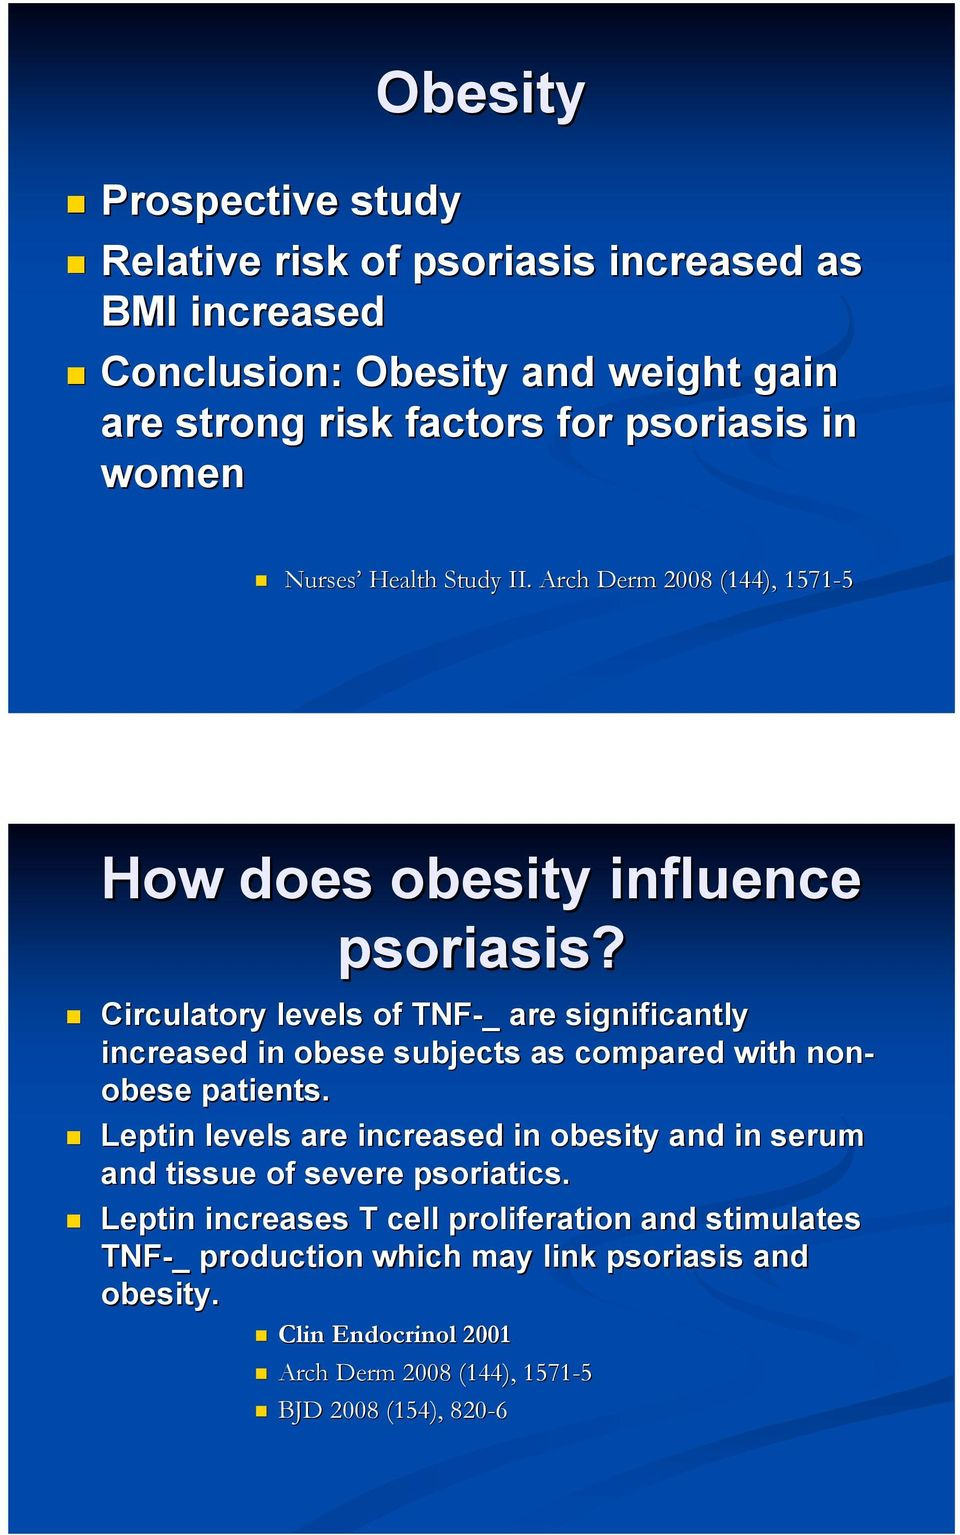 Arch Derm 2008 (144), 1571-5 How does obesity influence psoriasis?